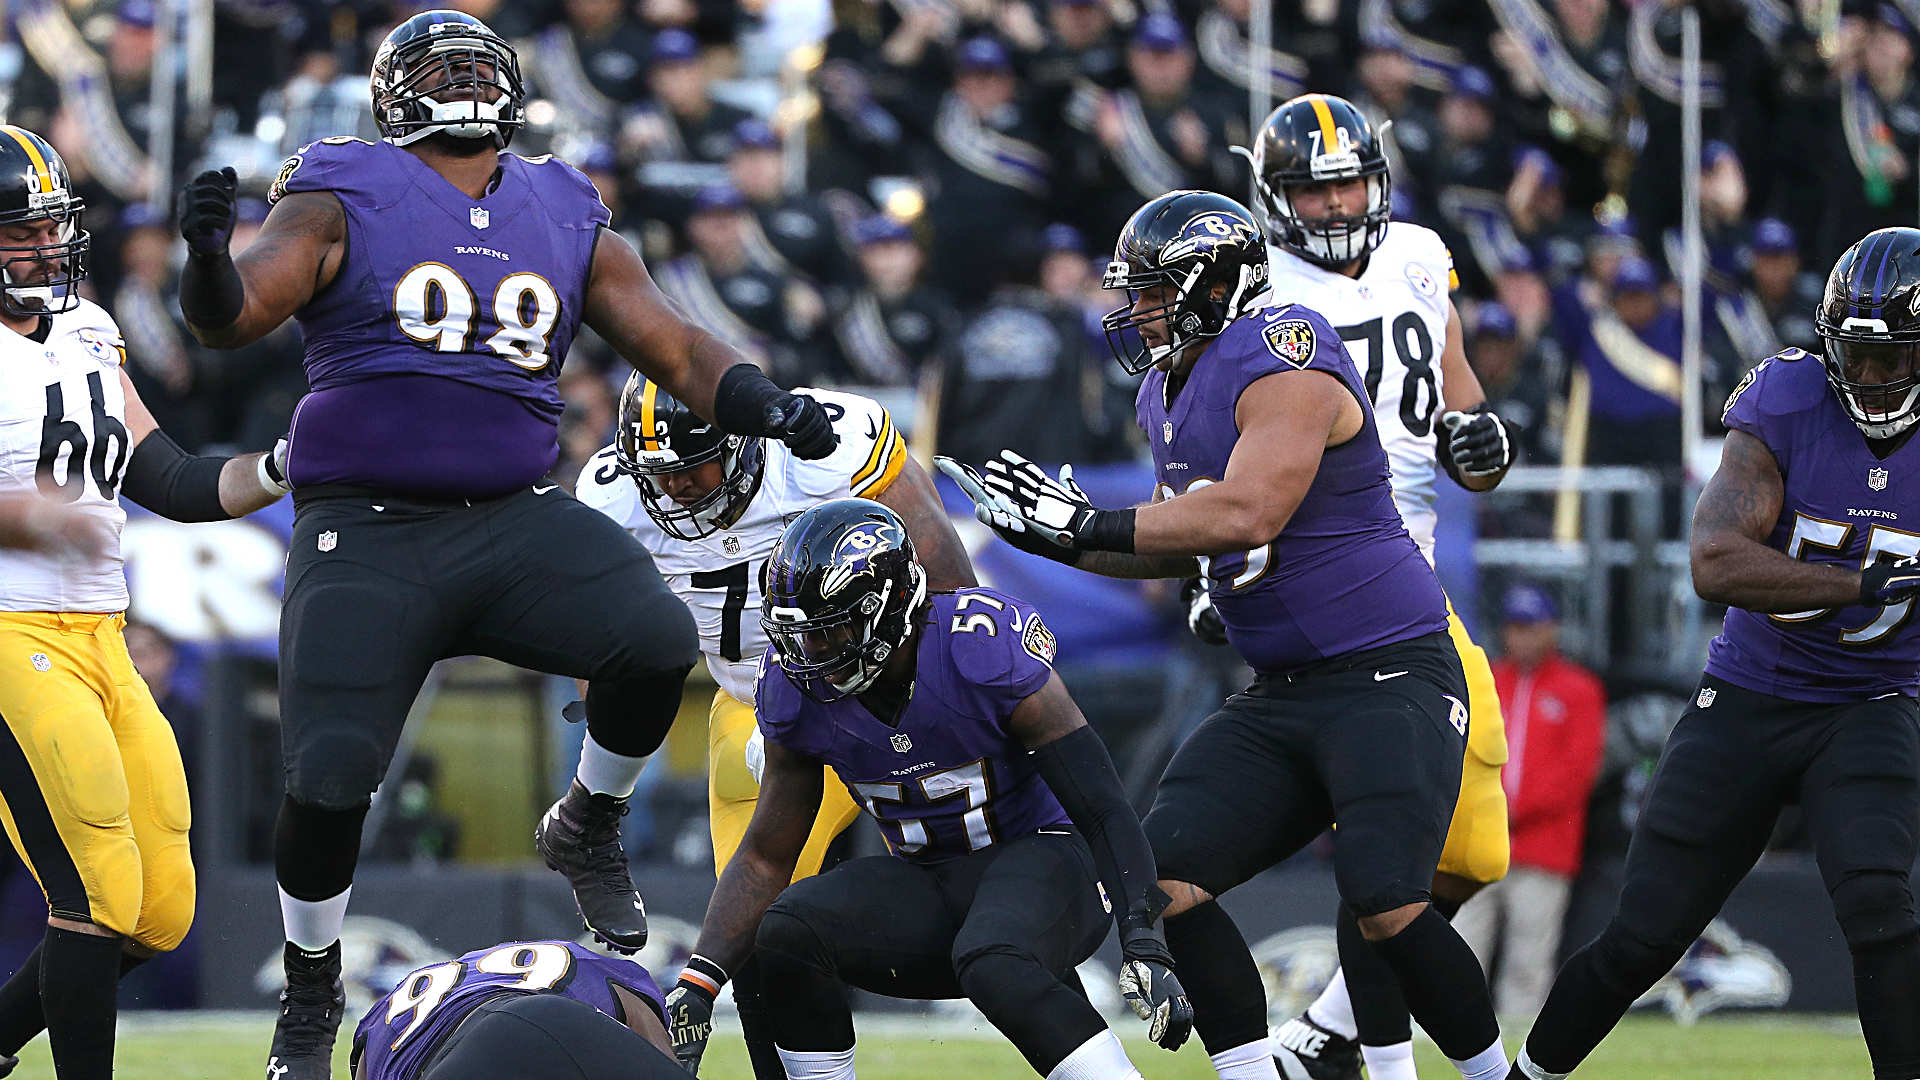 Ravens' defensive front looks to wreak havoc on Steelers ... again